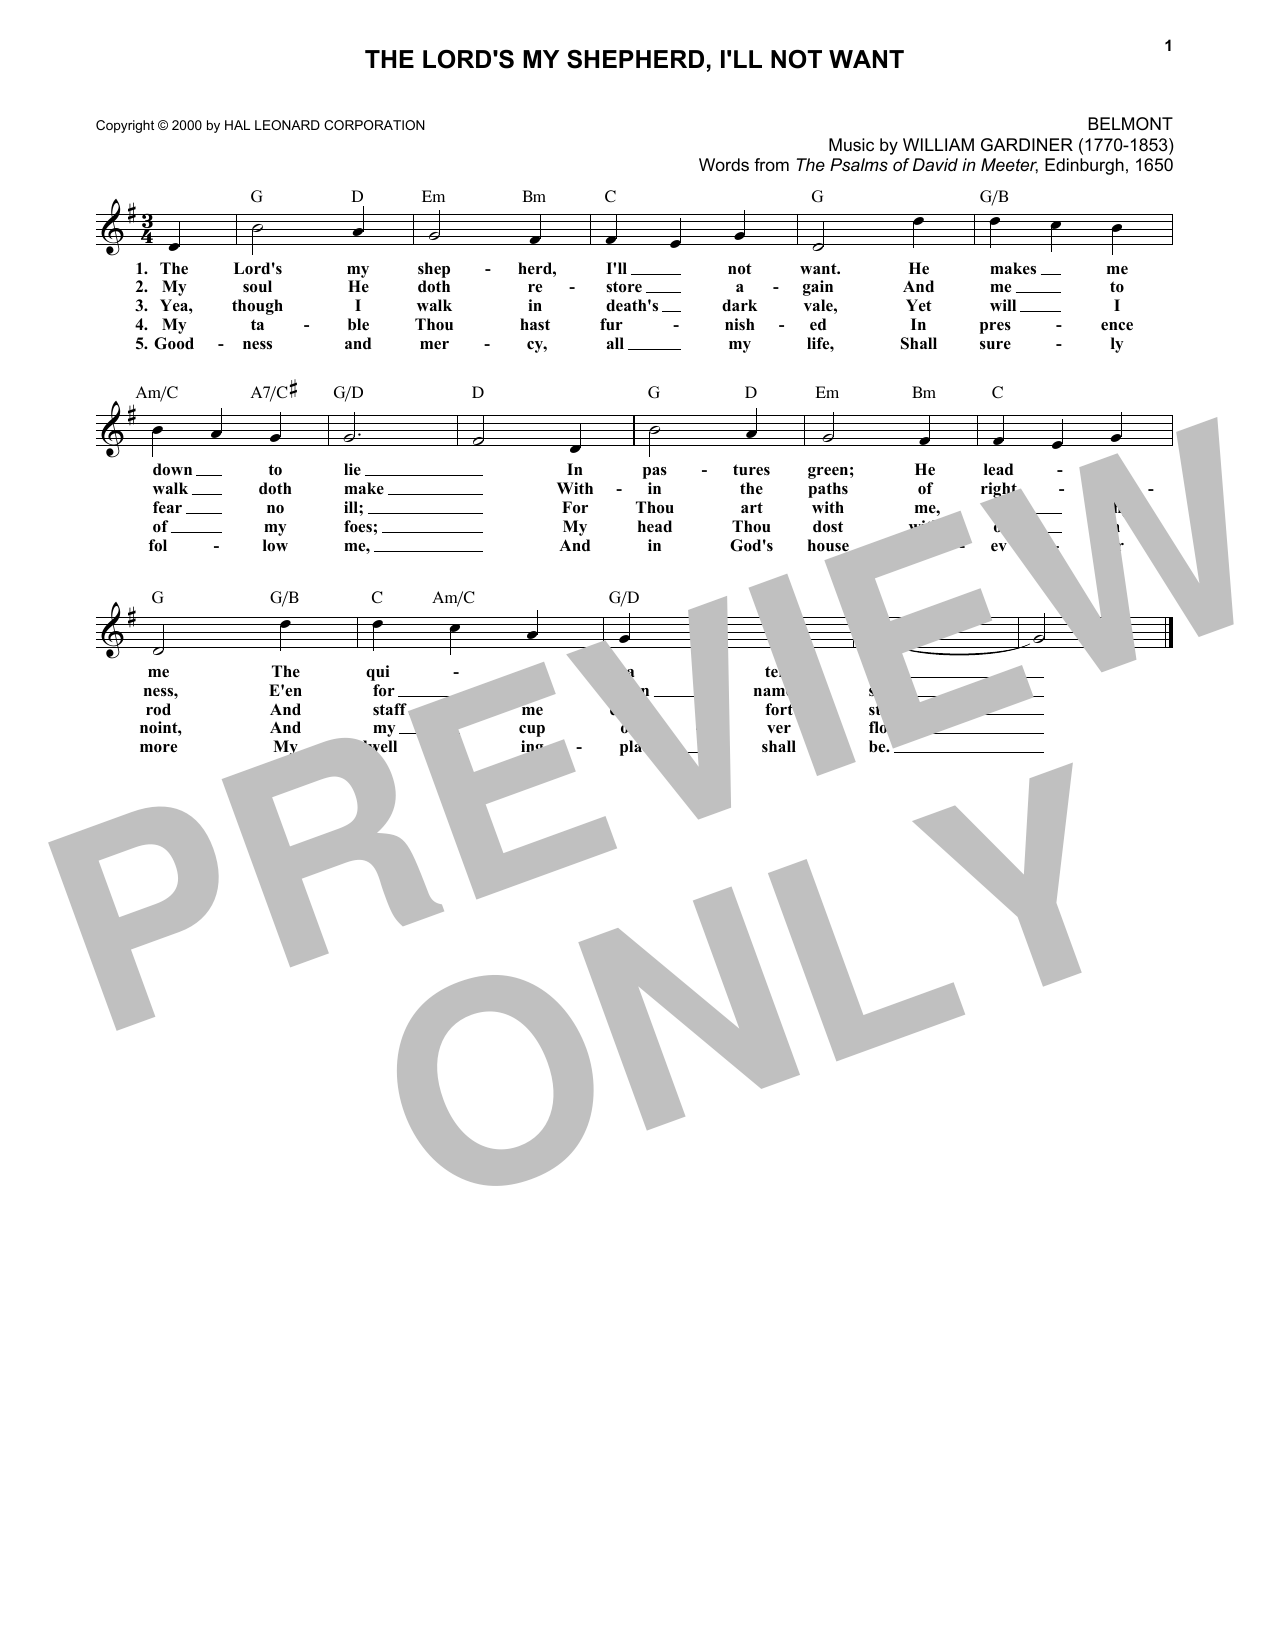 Scottish Psalter The Lord S My Shepherd I Ll Not Want Sheet Music Pdf Notes Chords Sacred Score Lead Sheet Fake Book Download Printable Sku 179597